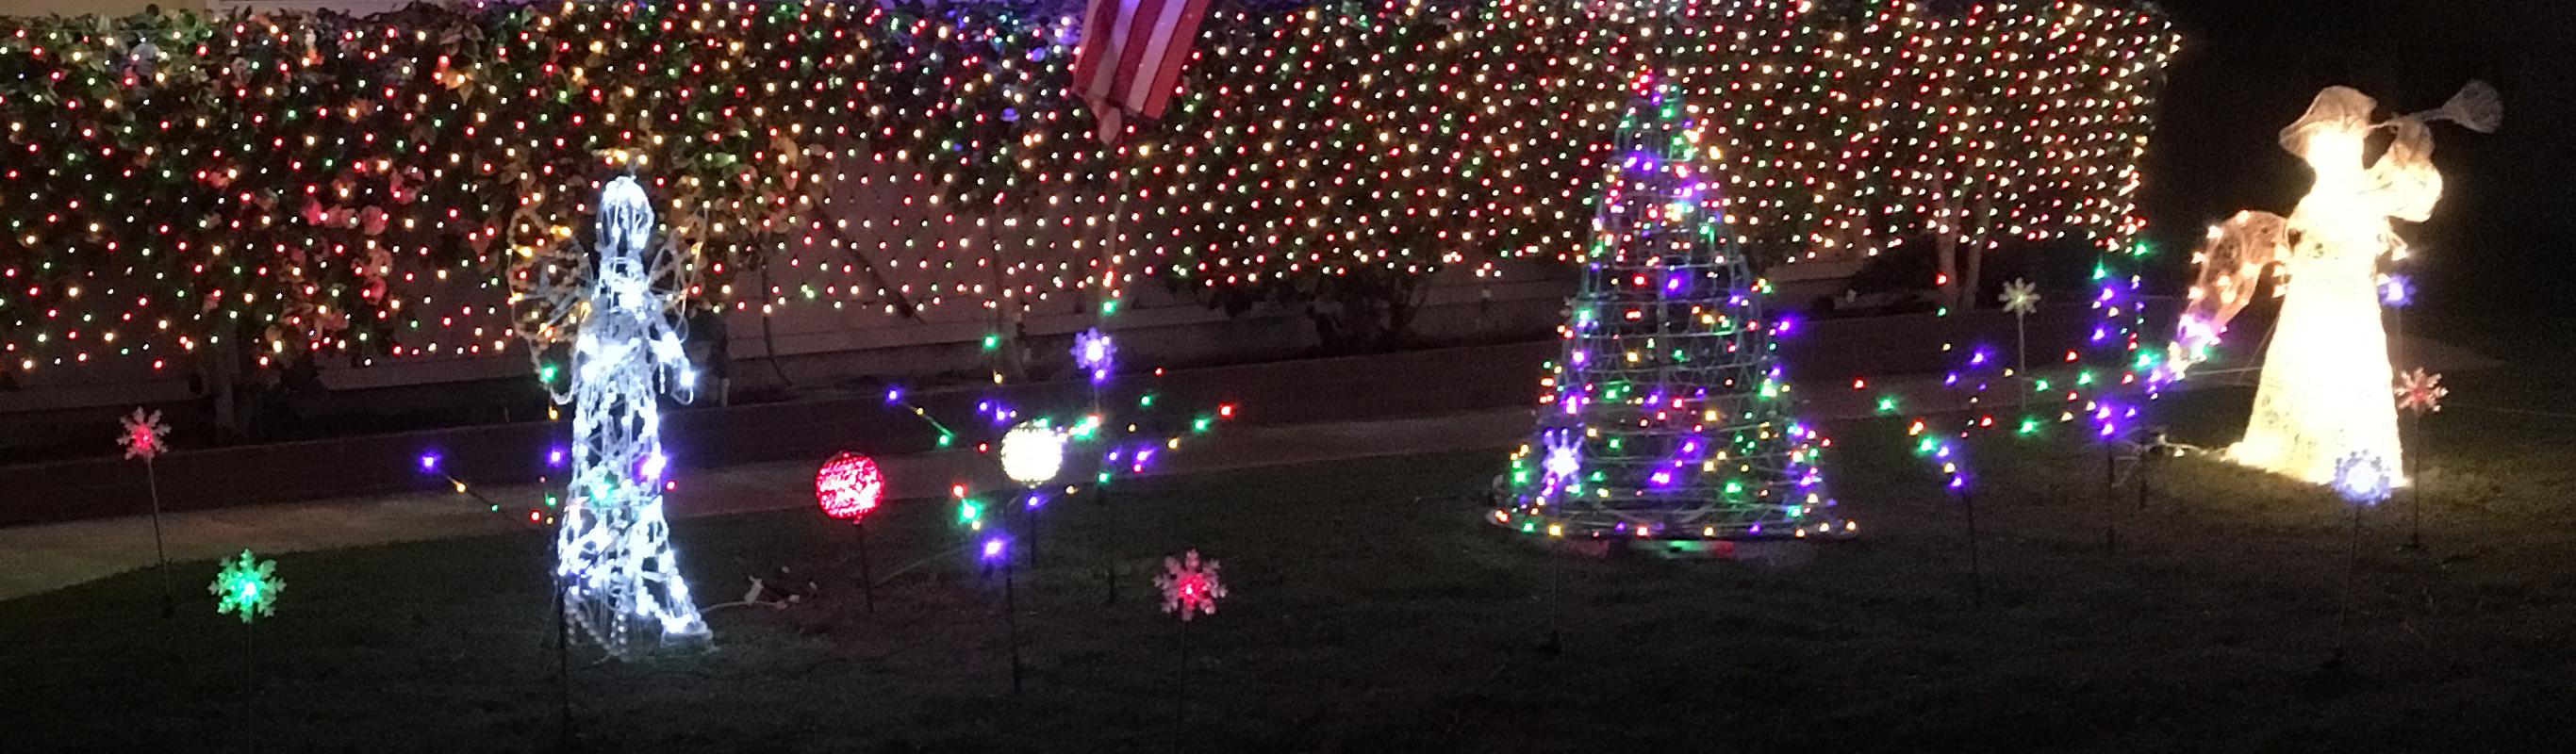 Christmas_Lawn_2018-12-07 a